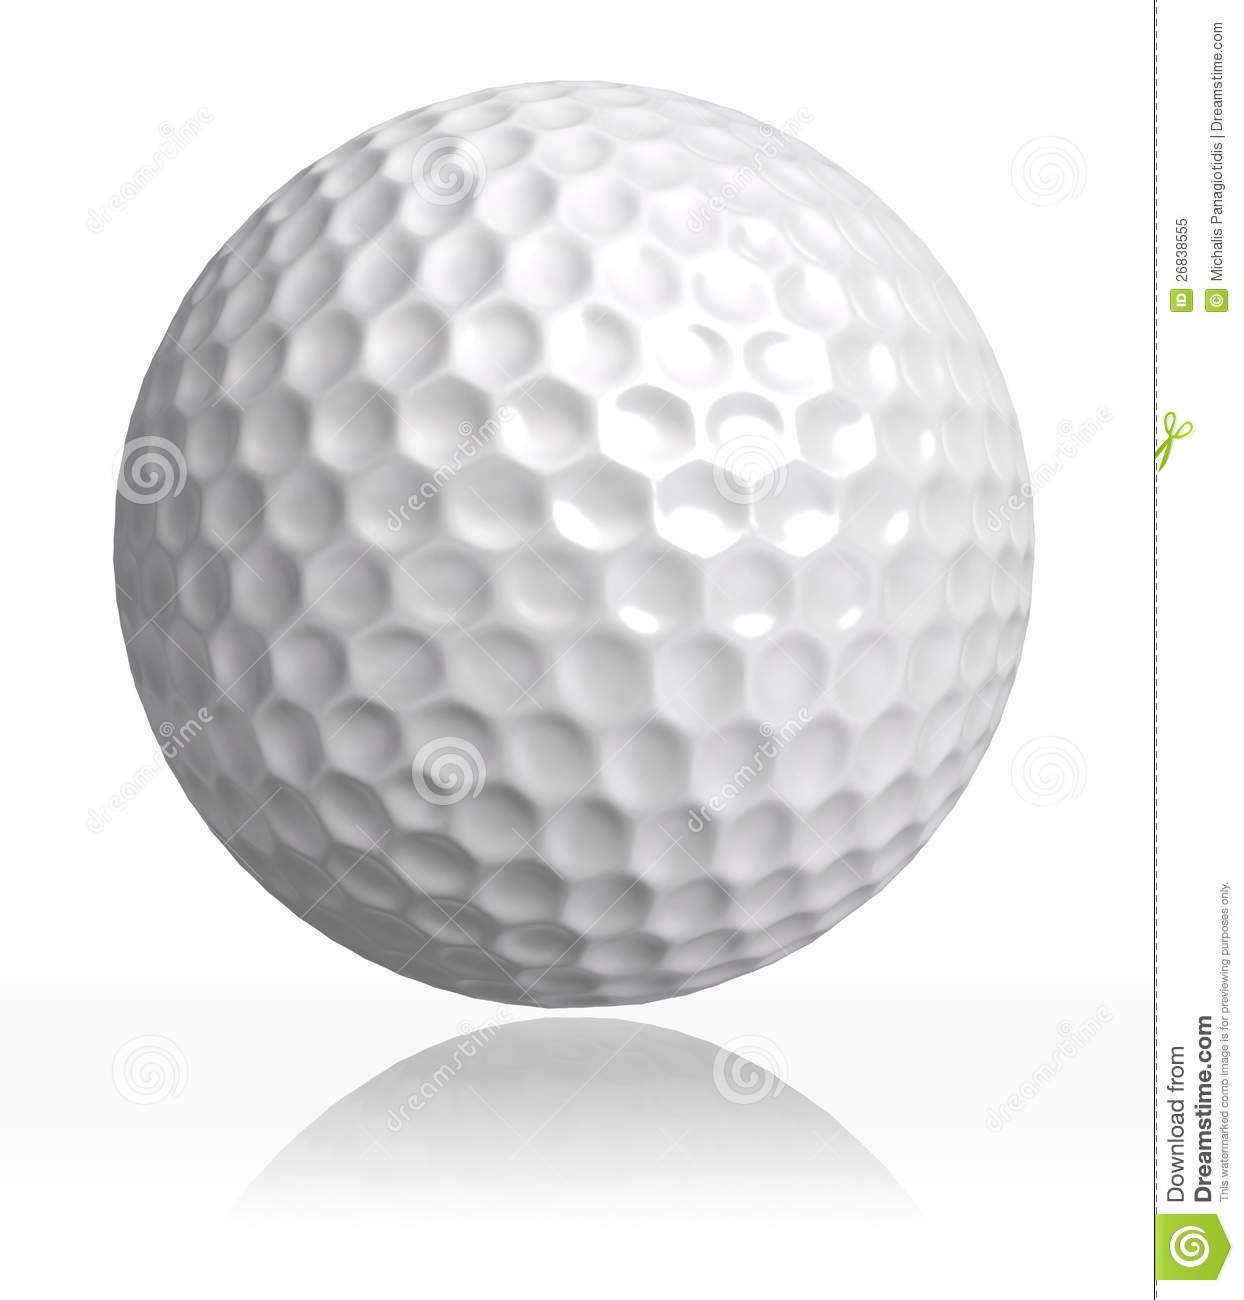 Golf Ball Clip Art Golf ball on white background.